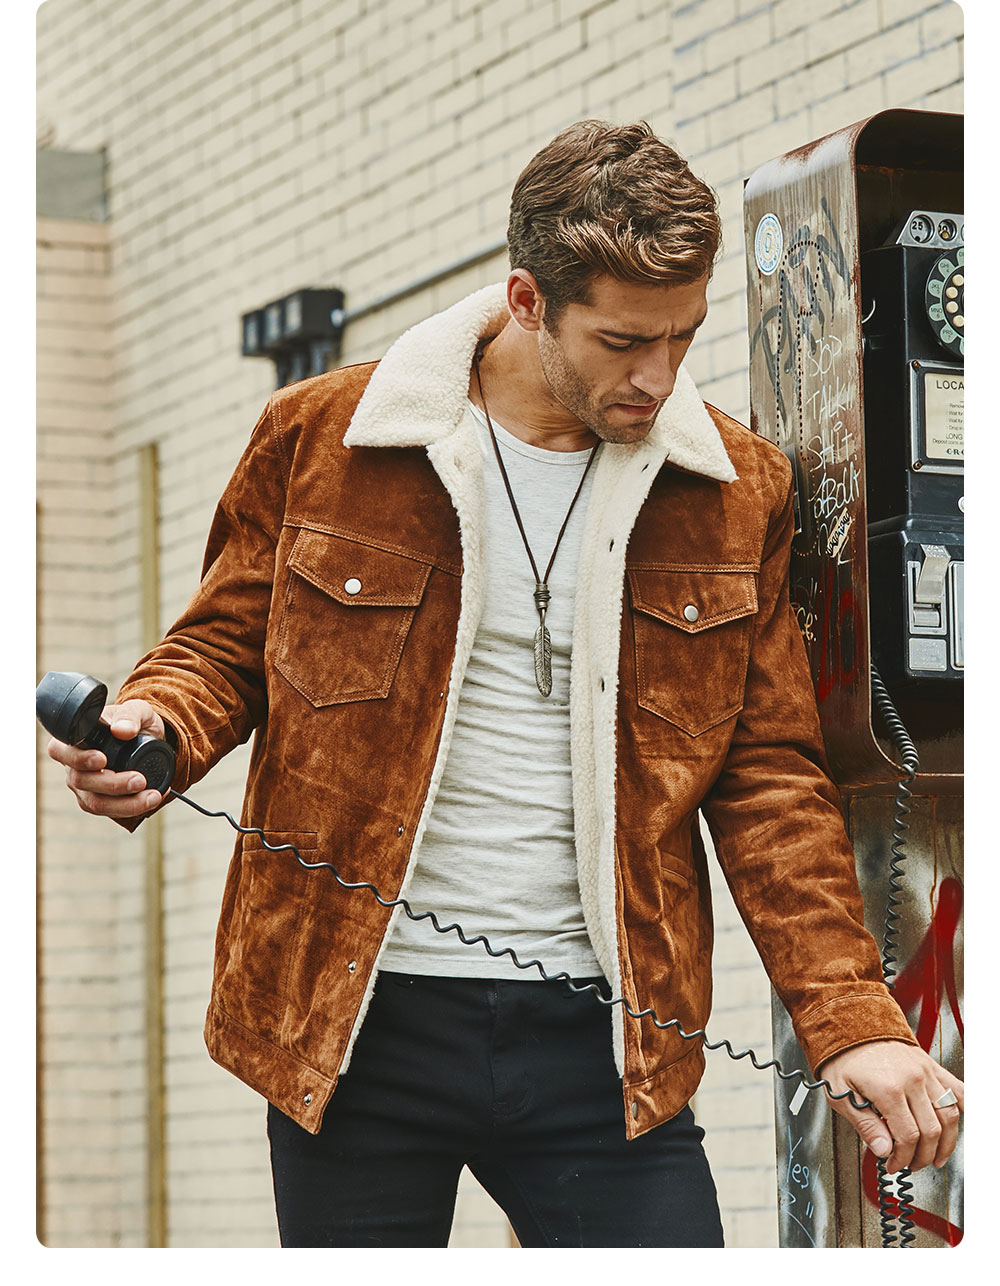 H63bb8328741740cfb28be009fcd3447al FLAVOR New Men's Real Leather Jacket Genuine Leather With Faux Shearling Warm Coat Men